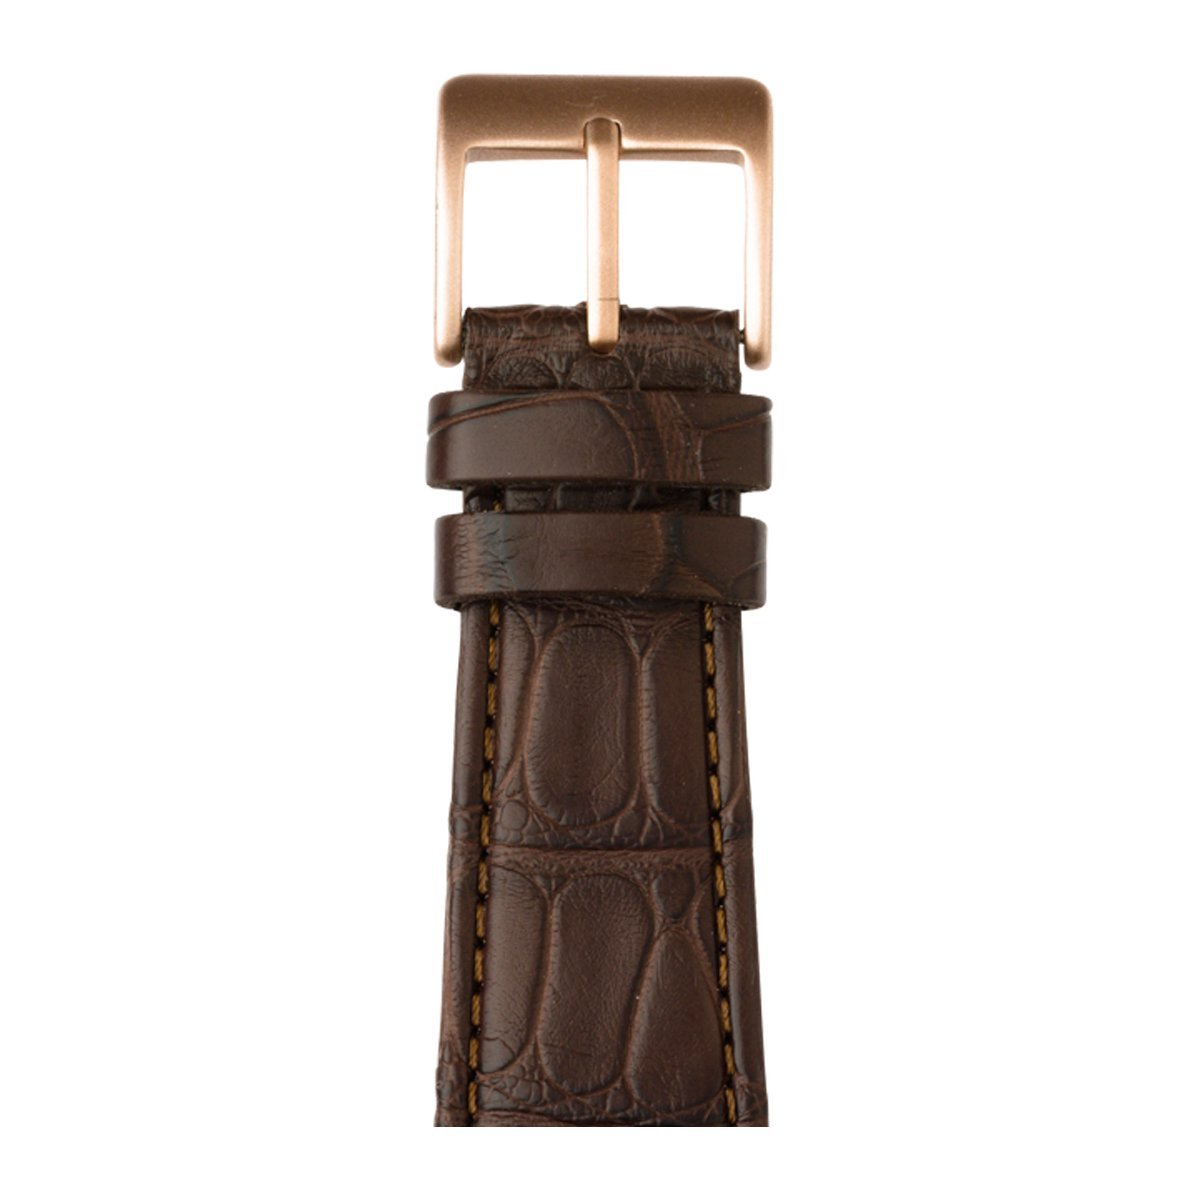 Roobaya | Premium Alligator Leather Apple Watch Band in Dark Brown | Includes Adapters matching the Color of the Apple Watch, Case Color:Rose Gold Aluminum, Size:42 mm